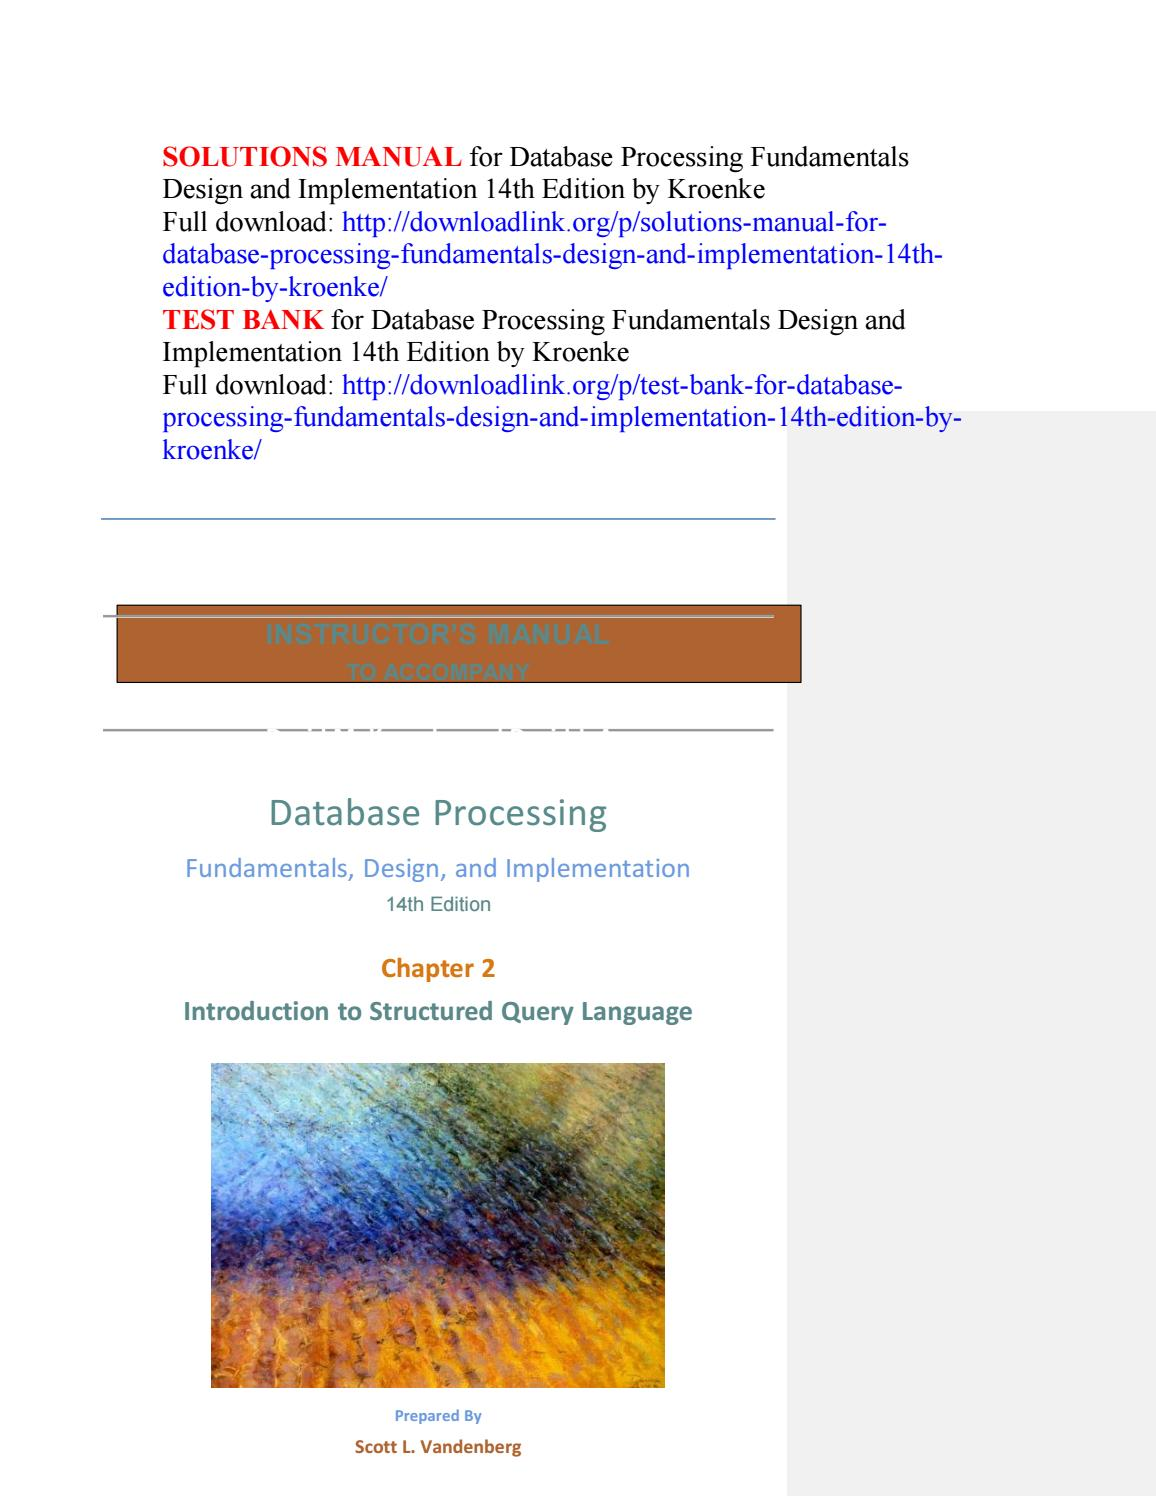 Solutions manual for database processing fundamentals design and  implementation 14th edition by kroe by hurino - issuu